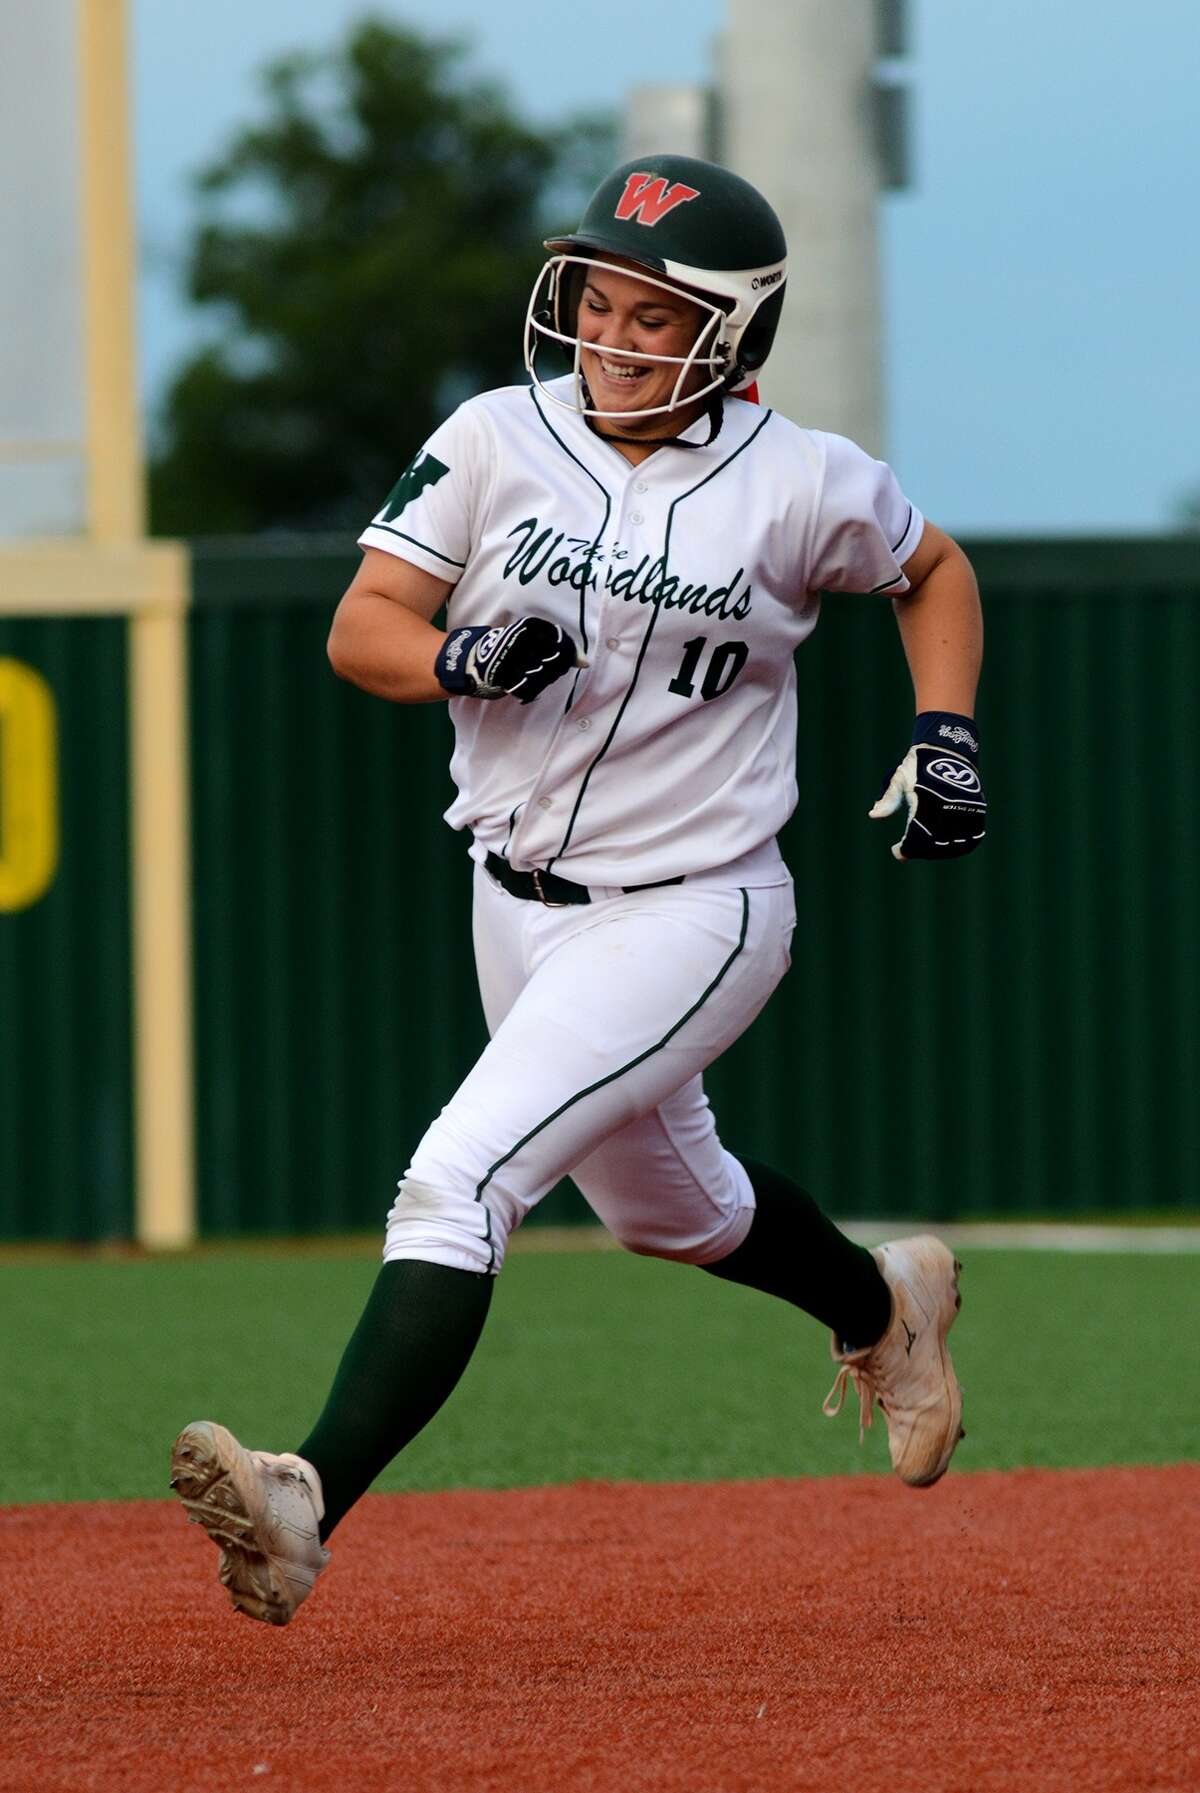 The Woodlands sophomore catcher Kelcy Leach is all smiles as she runs the bases after her 8th inning, game-winning homerun against Lake Travis in game 2 of their 2015 UIL Regional Finals matchup at Mumford High School on Saturday, May 30, 2015. (Photo by Jerry Baker/Freelance)